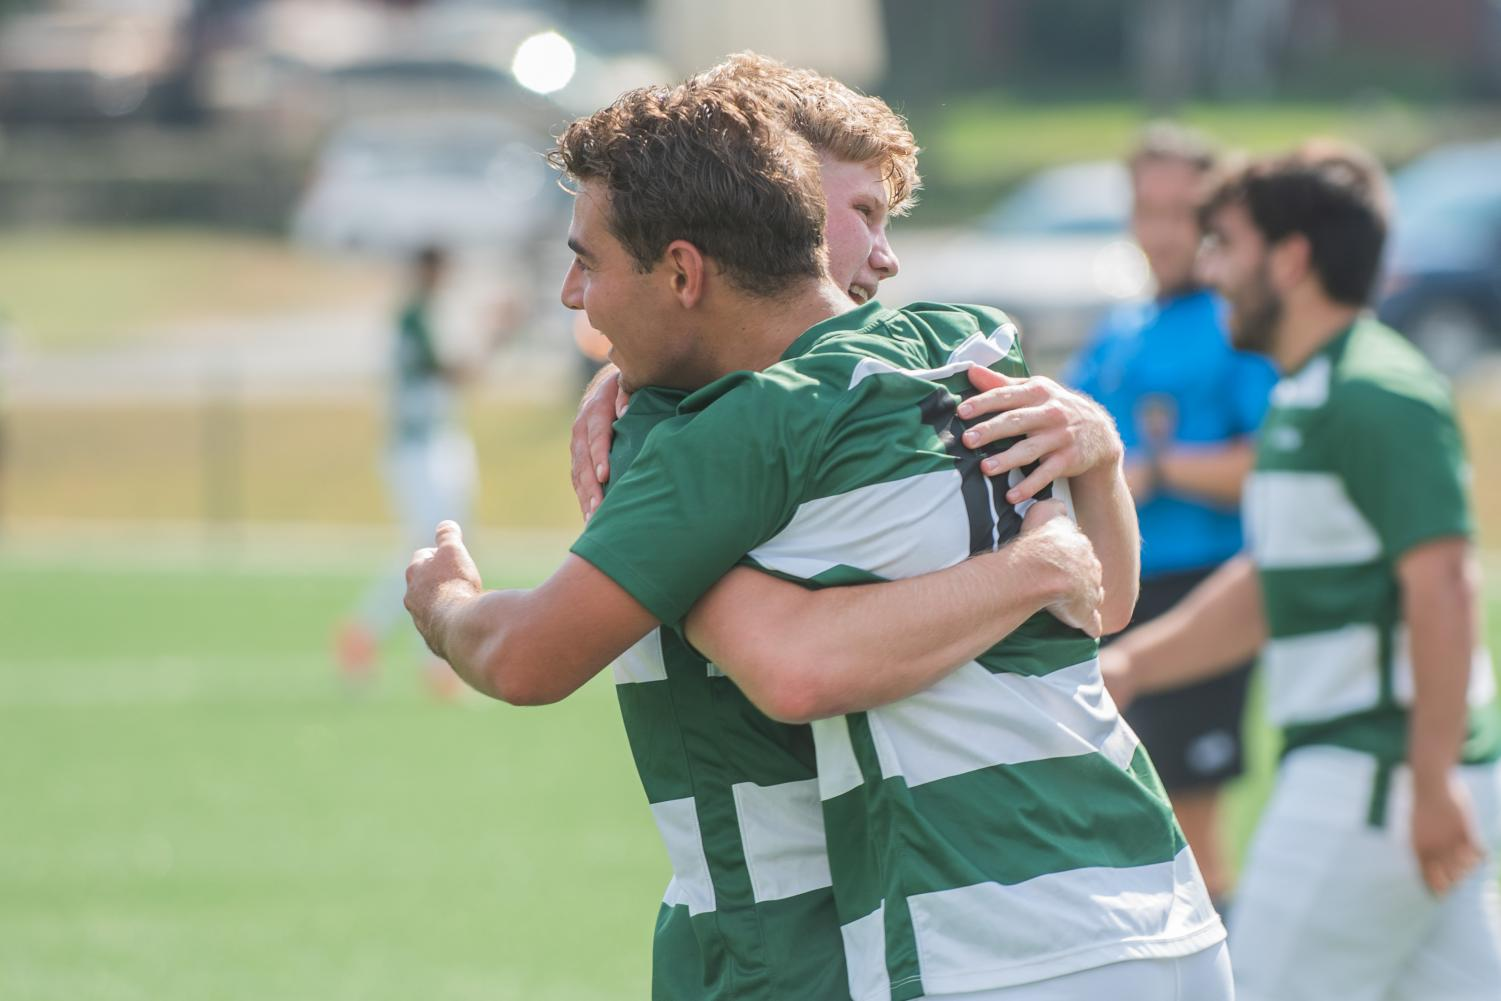 Juniors Mitchell Roell and Geert Bijl celebrate a win with a hug in a game at the Montour Junction Sports Complex. The celebration continued when the team beat the school record for most wins in a season.